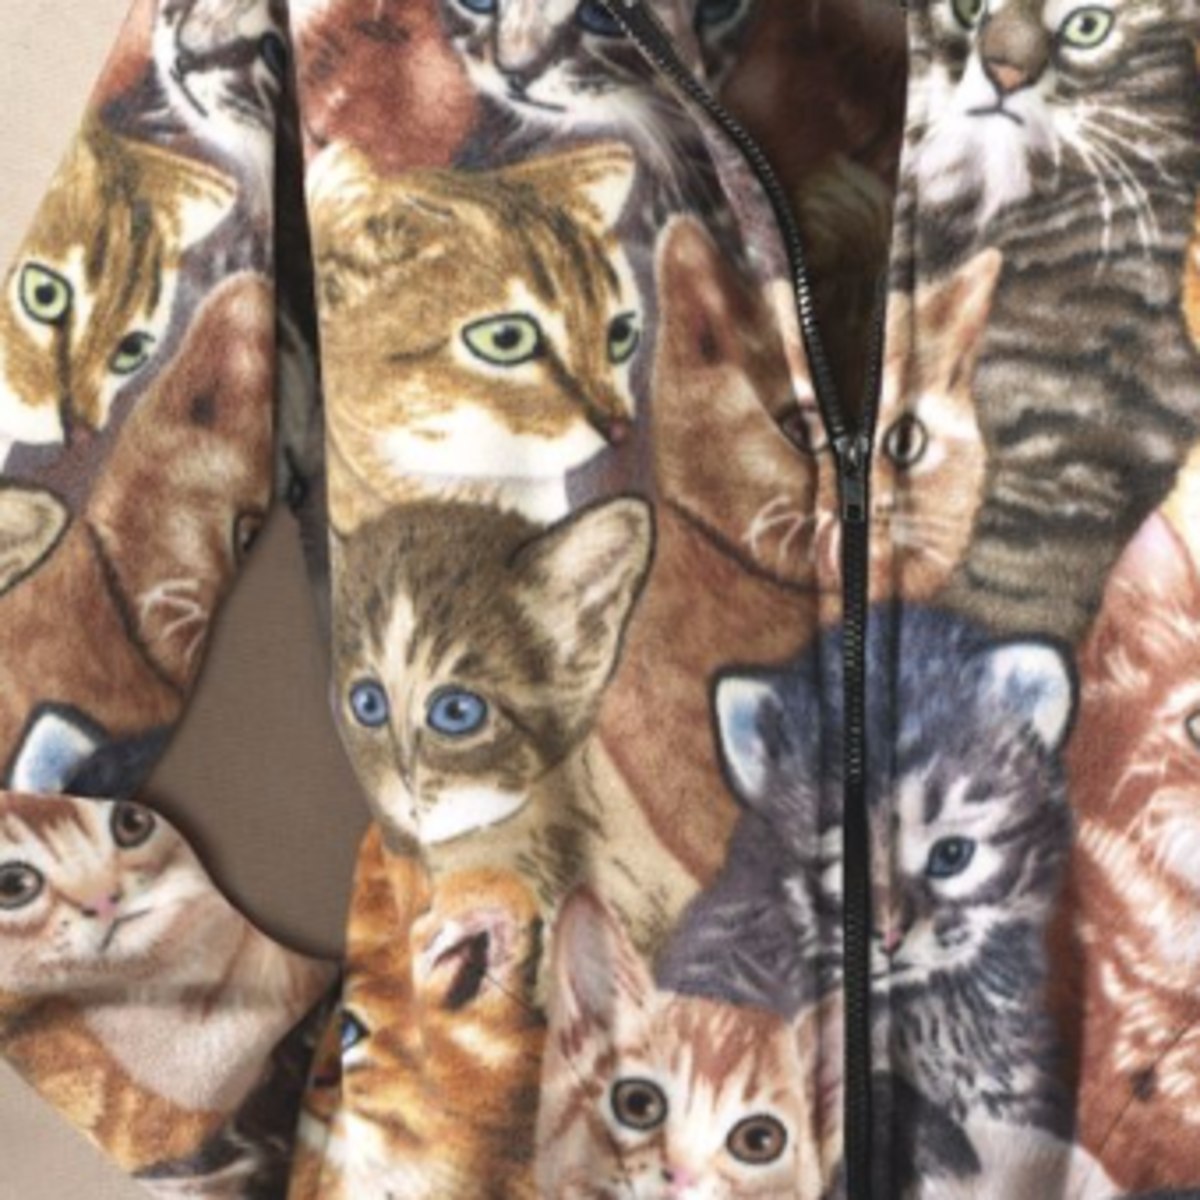 Look at this lovely fleece covered with ... yes you guessed it...cats!